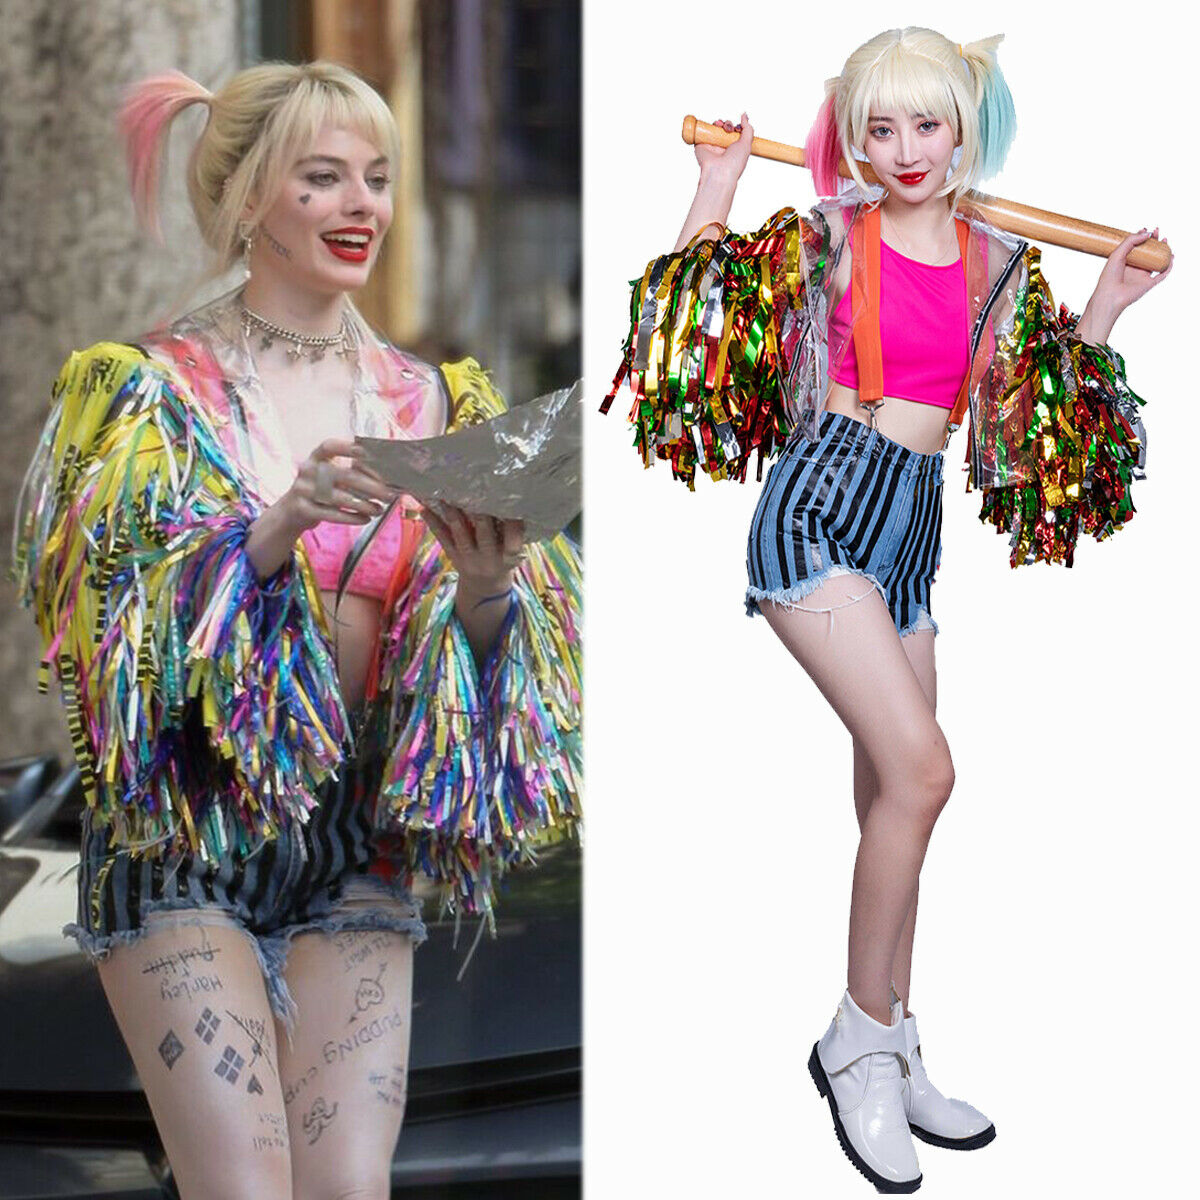 Dc Comics Harley Quinn 1 Set Cosplay Costumes Birds Of Prey Wig Movie Replica Outfit Jeans Cosplay Props Women 2020 New Movie Tv Costumes Aliexpress